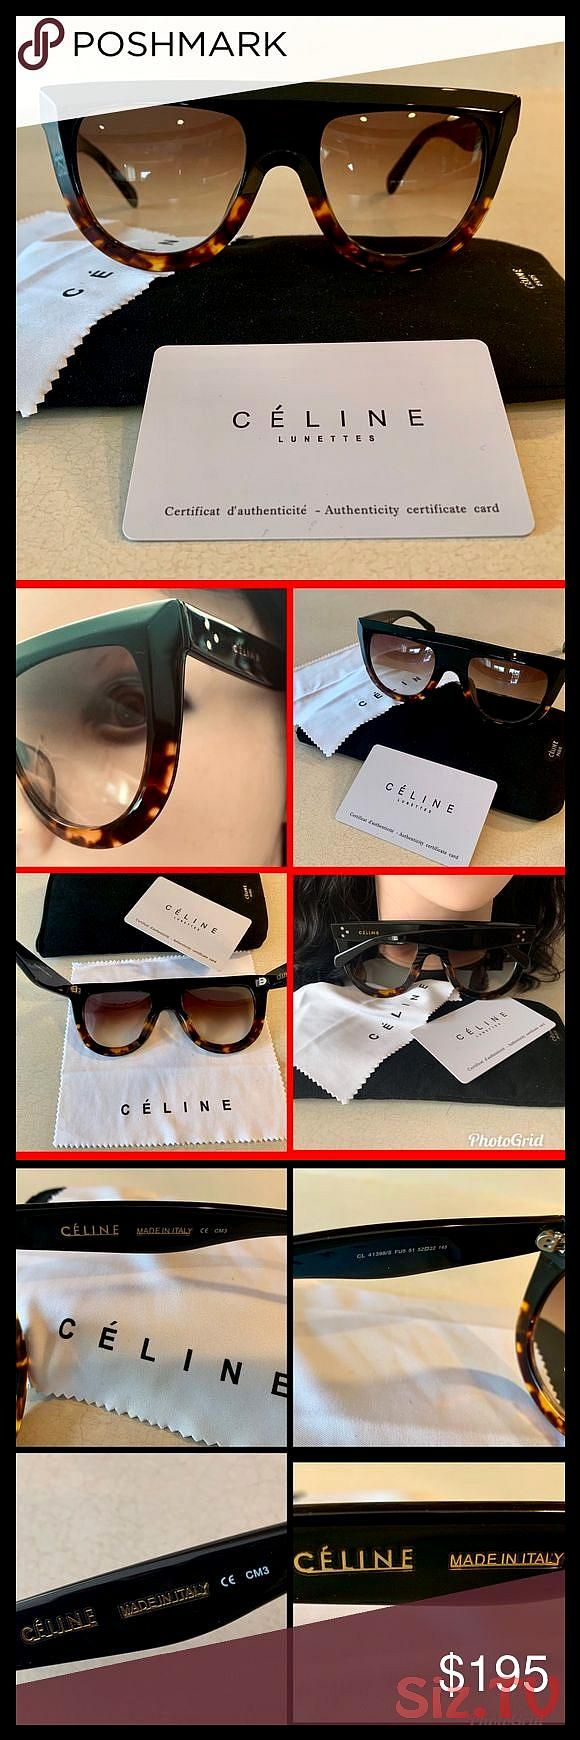 Celine Sunglasses Bought this in a Duty free store in Italy Milan early this year on my vacation and NEVER wore it Purchased for 465Tax This is Celine Sunglasses Bought t...